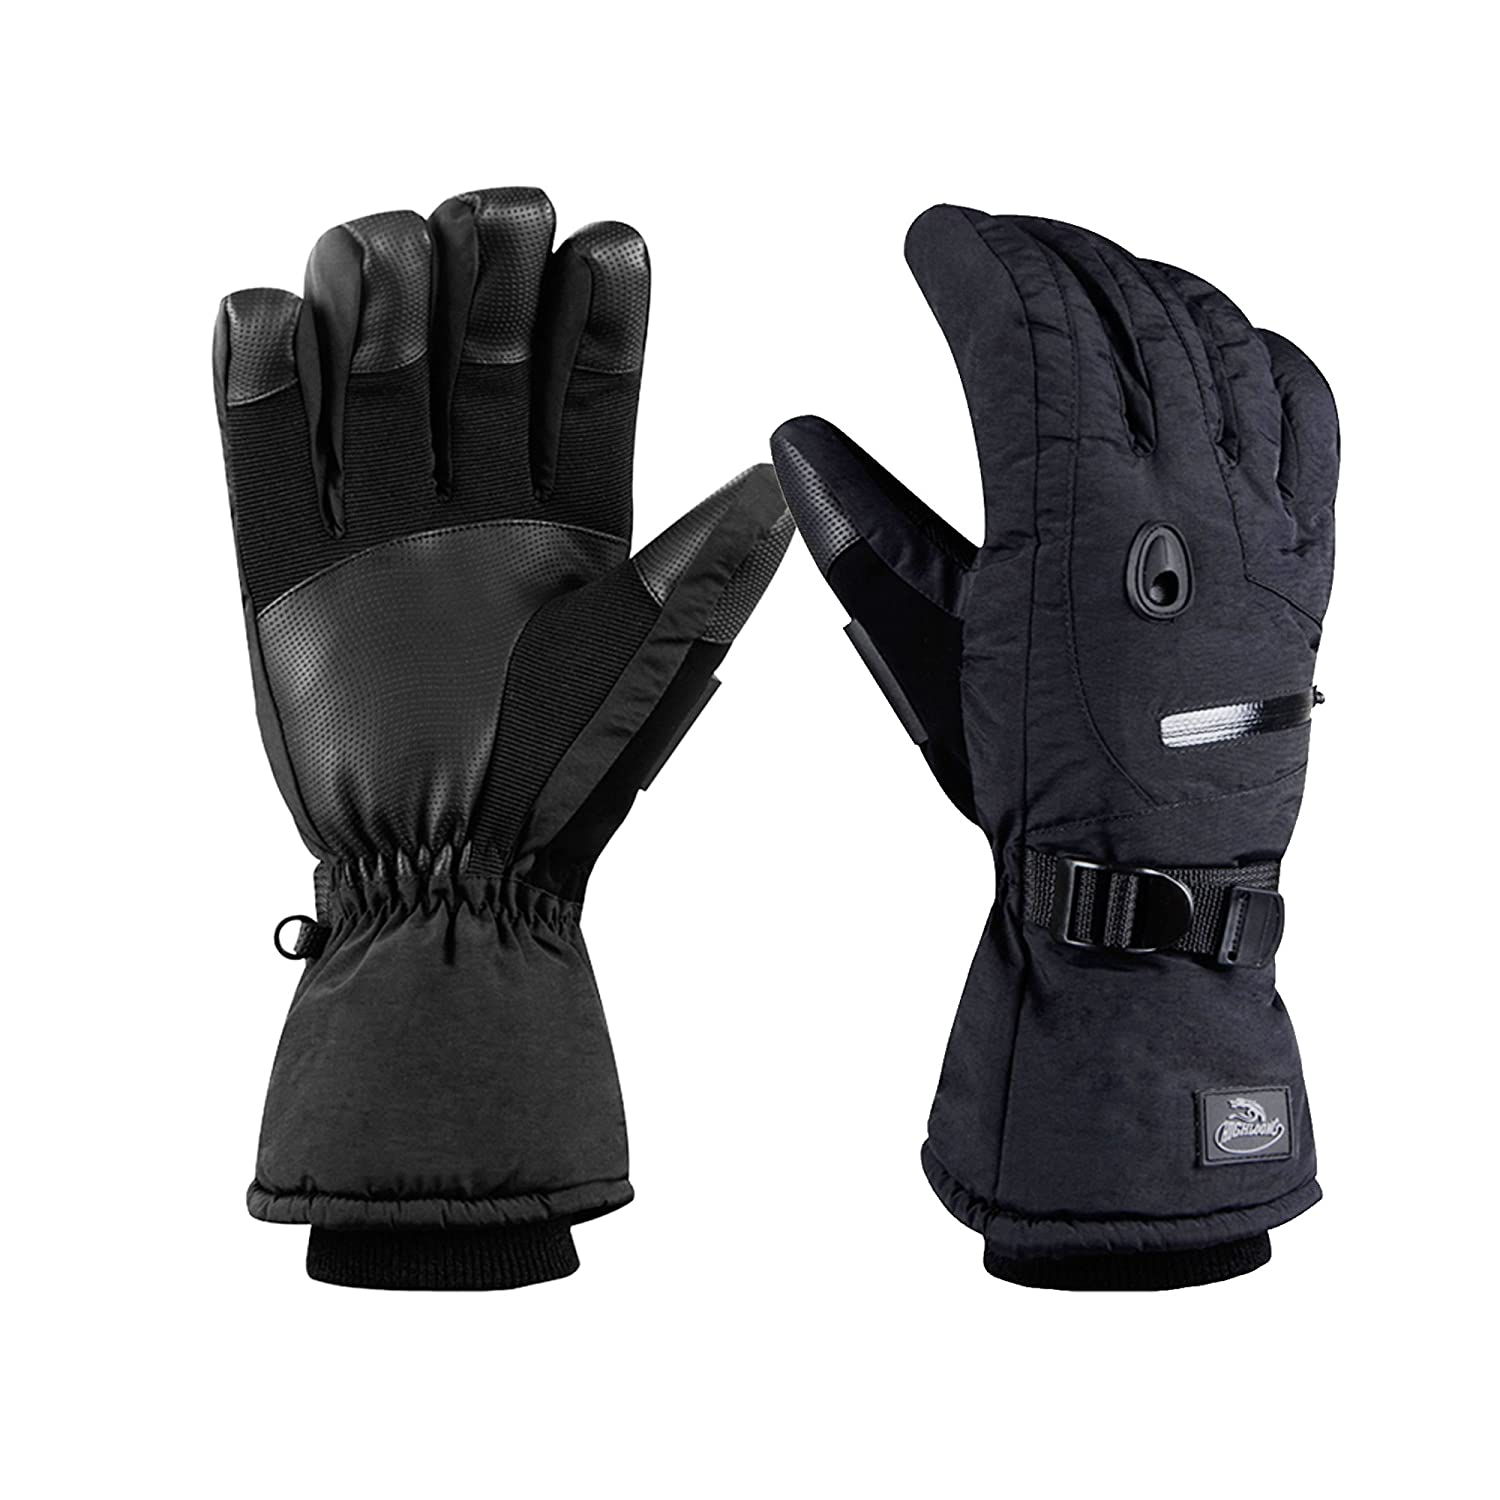 440388223bb2b1 HighLoong Men's Waterproof Ski Snowboard Gloves Warm Thinsulate Lined Cold  Winter Skiing Snowboarding Glove